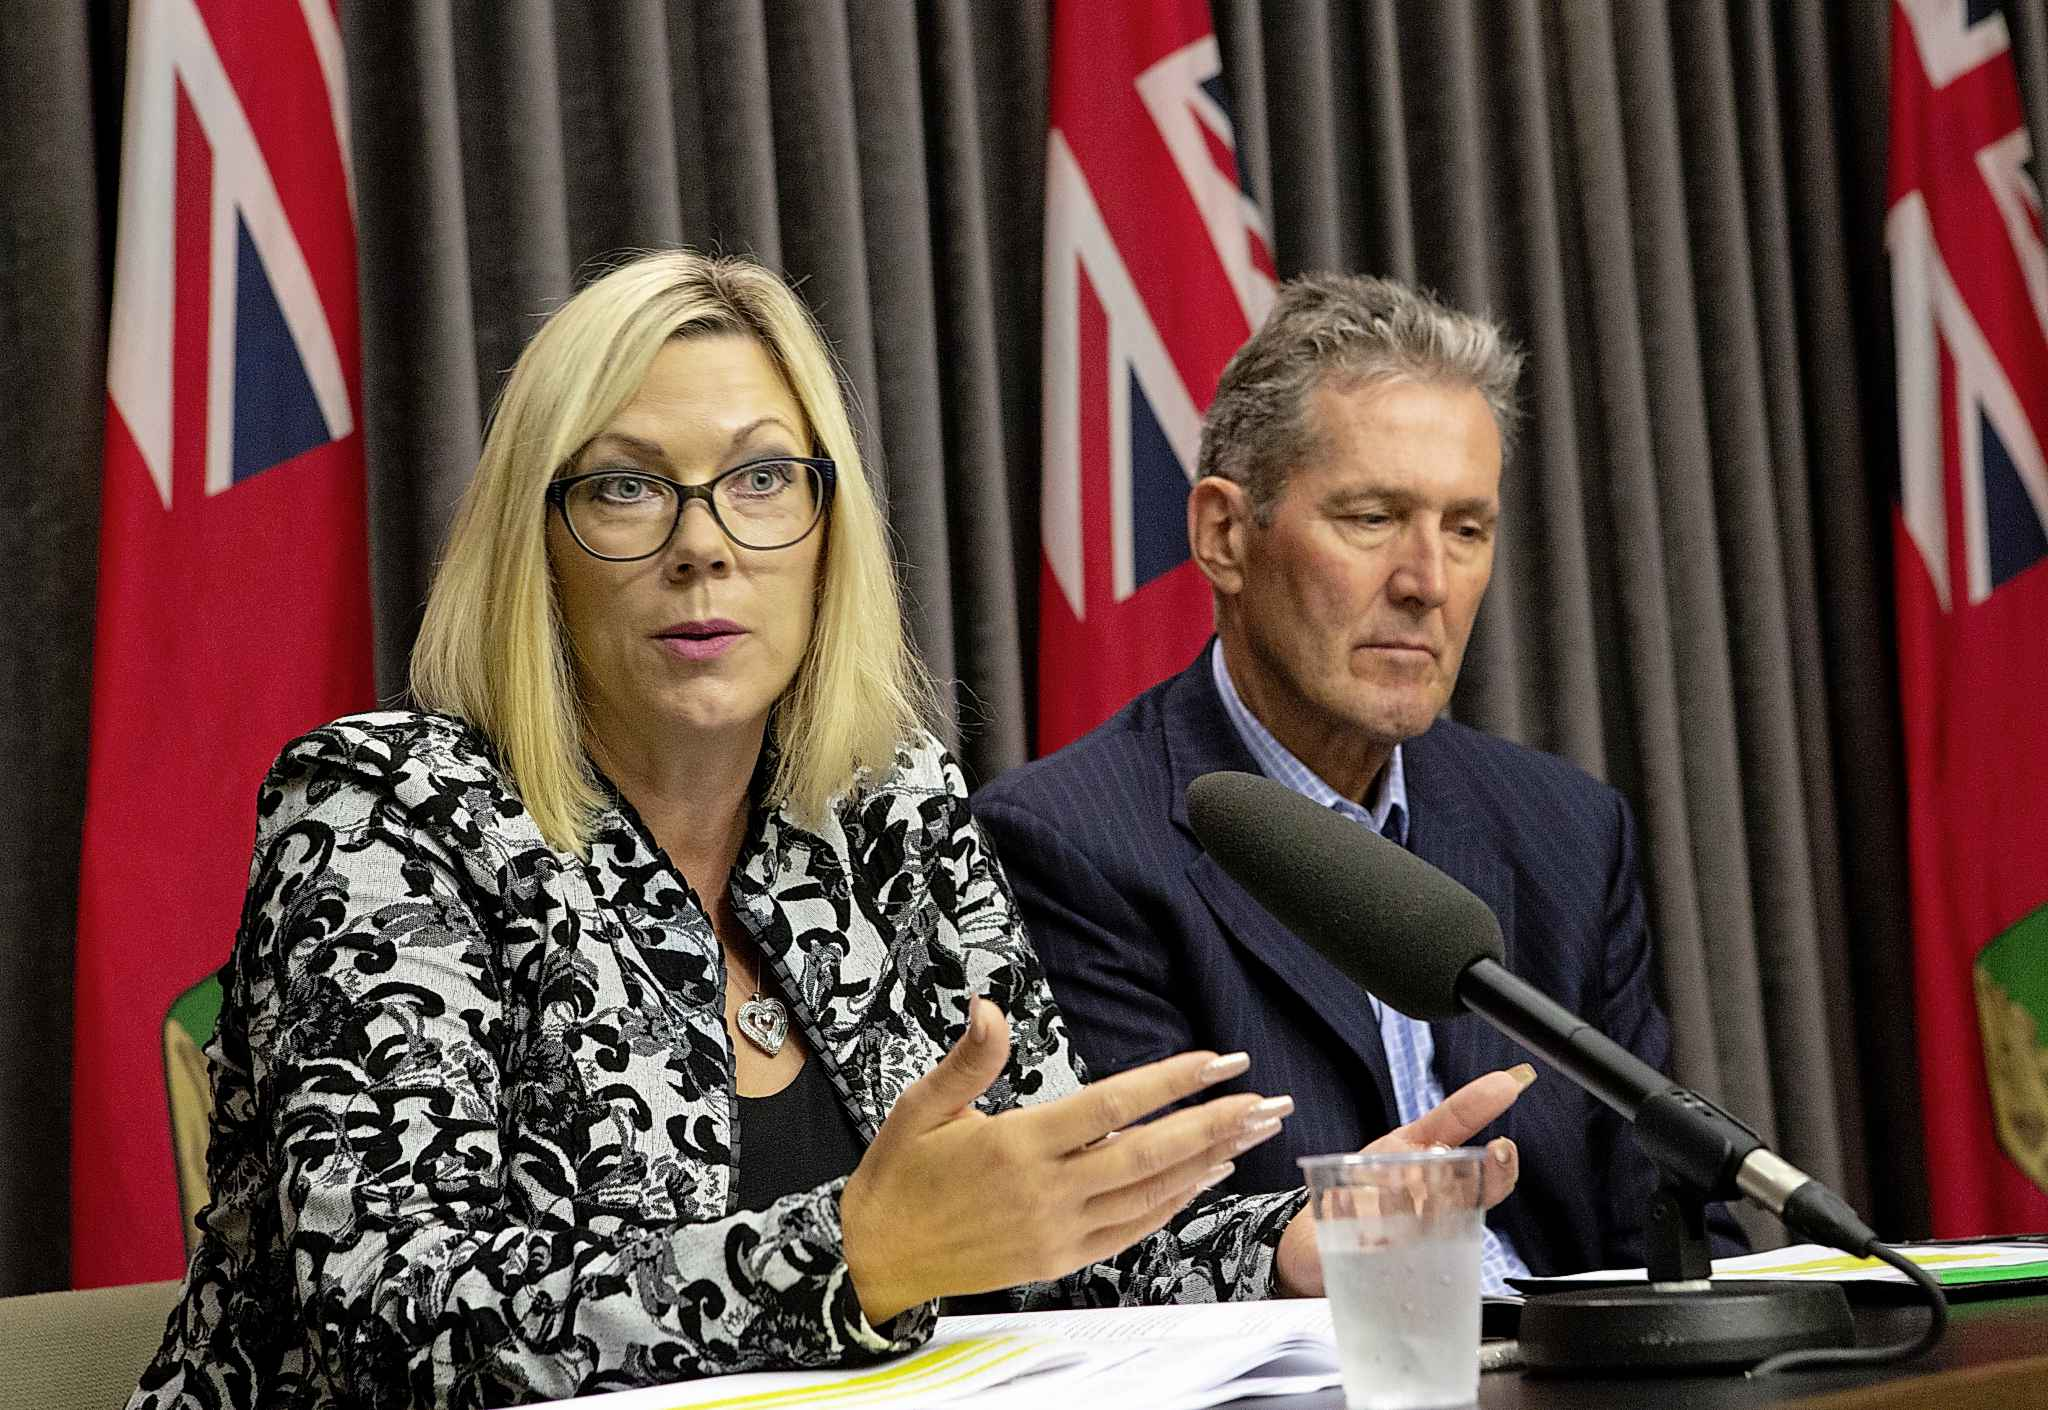 Manitoba Premier Brian Pallister, right, listens as Sustainable Development Minister Rochelle Squires discusses a recent report detailing workplace sexual harassment and measures taken to mitigate it in government at the Manitoba Legislature building press room.